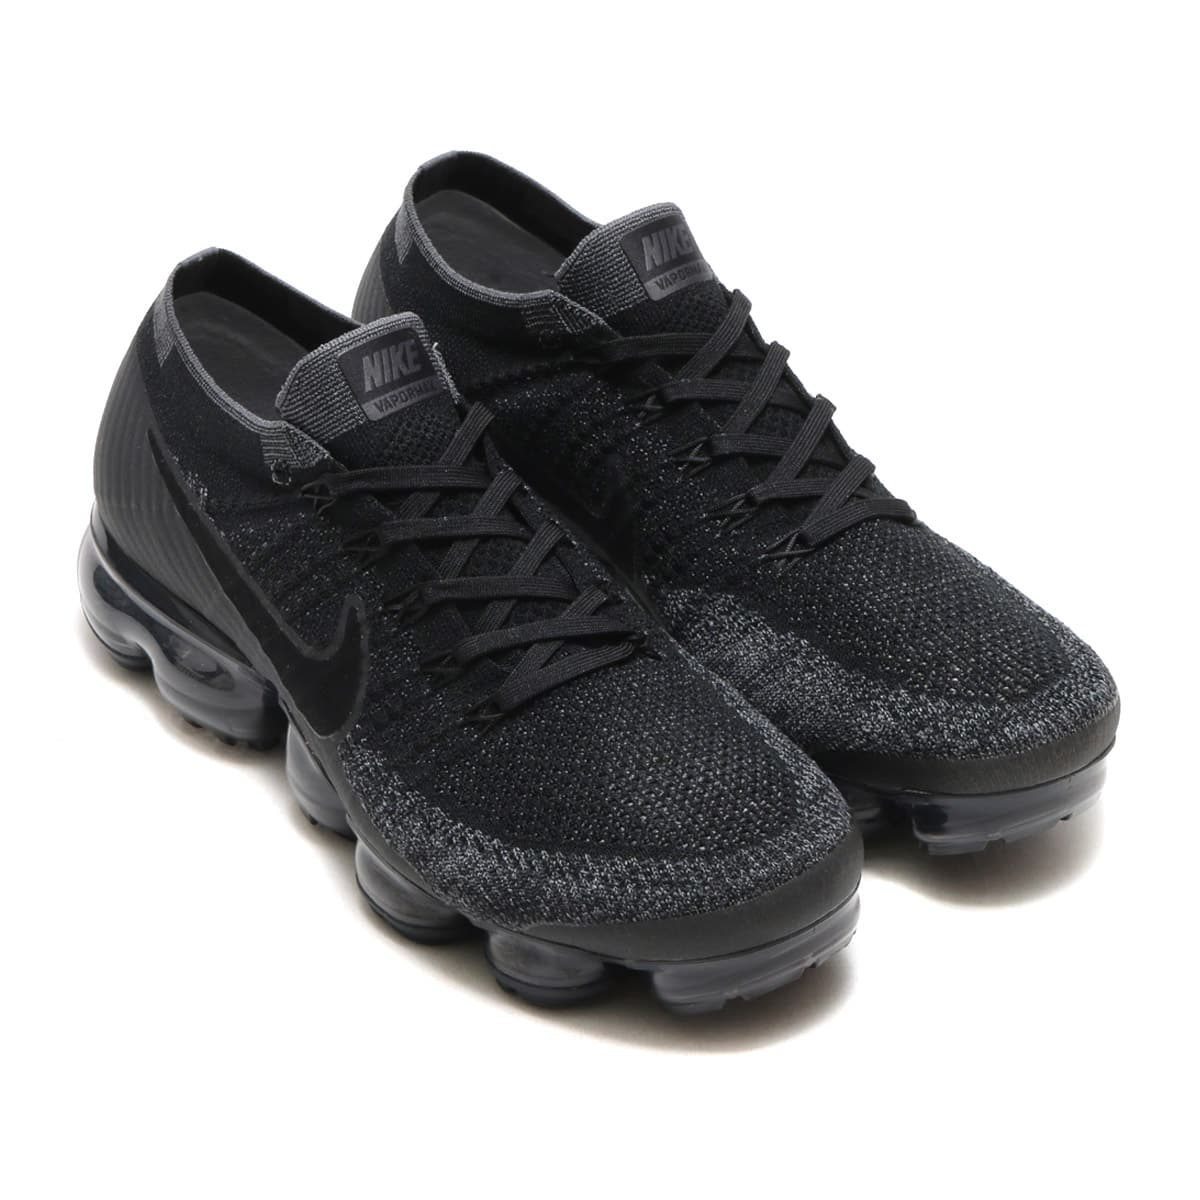 NIKE AIR VAPORMAX FLYKNIT  BLACK/ANTHRACITE-DARK GREY_photo_large